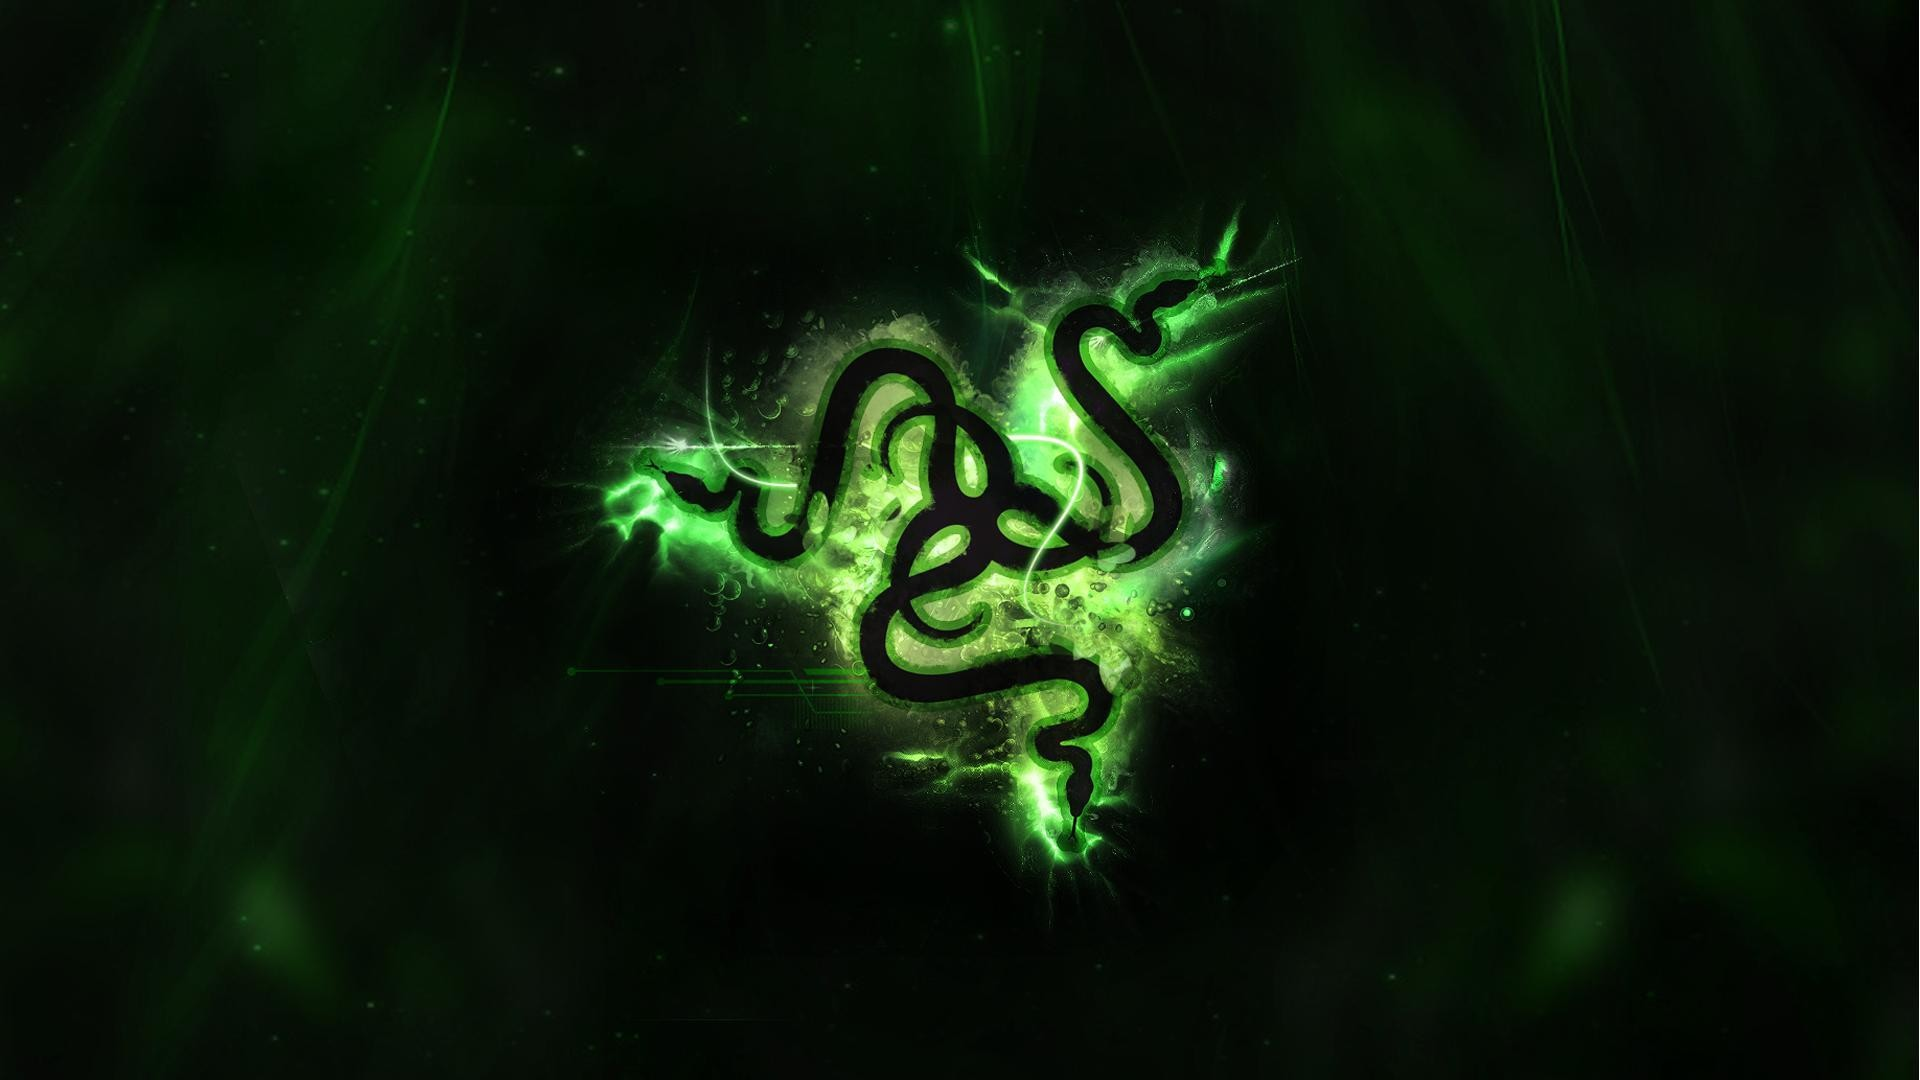 Razer Wallpapers 1920x1080 85 Background Pictures